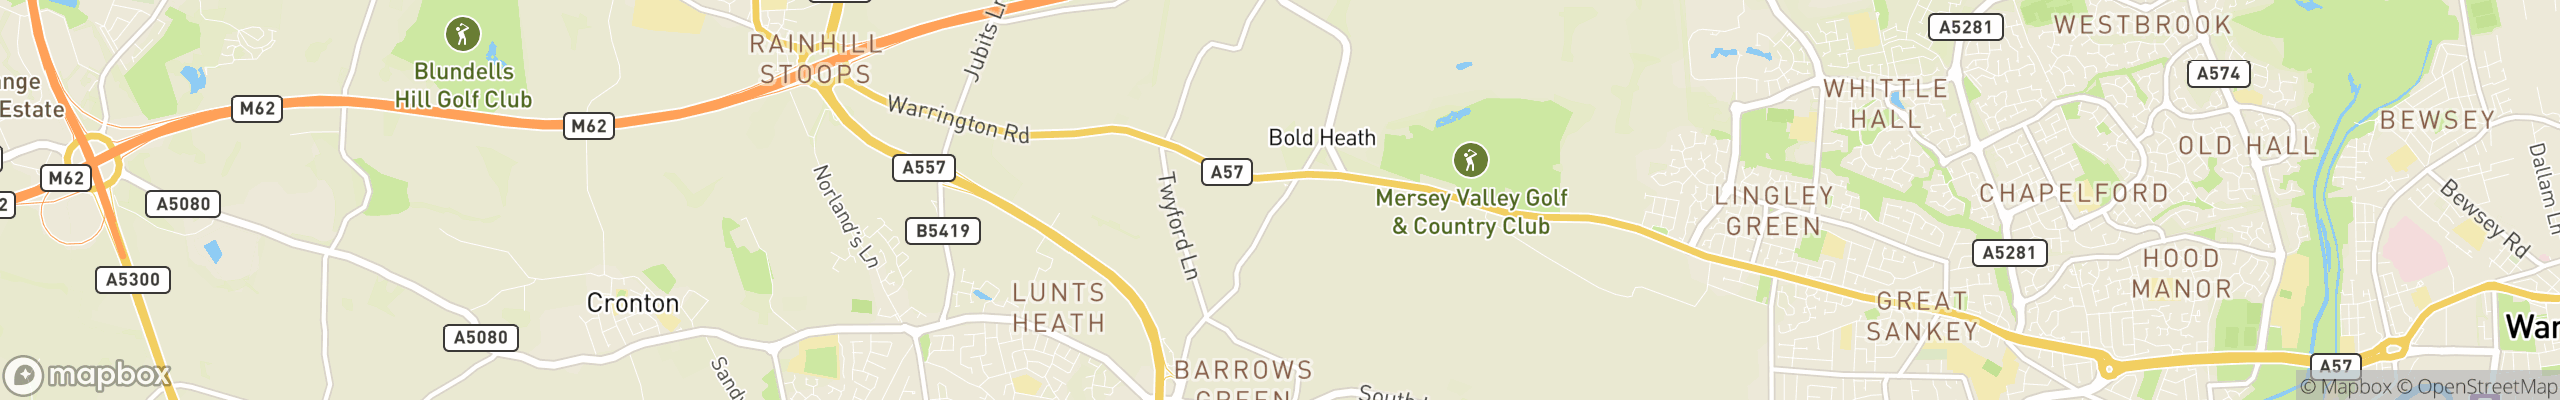 Bold Heath